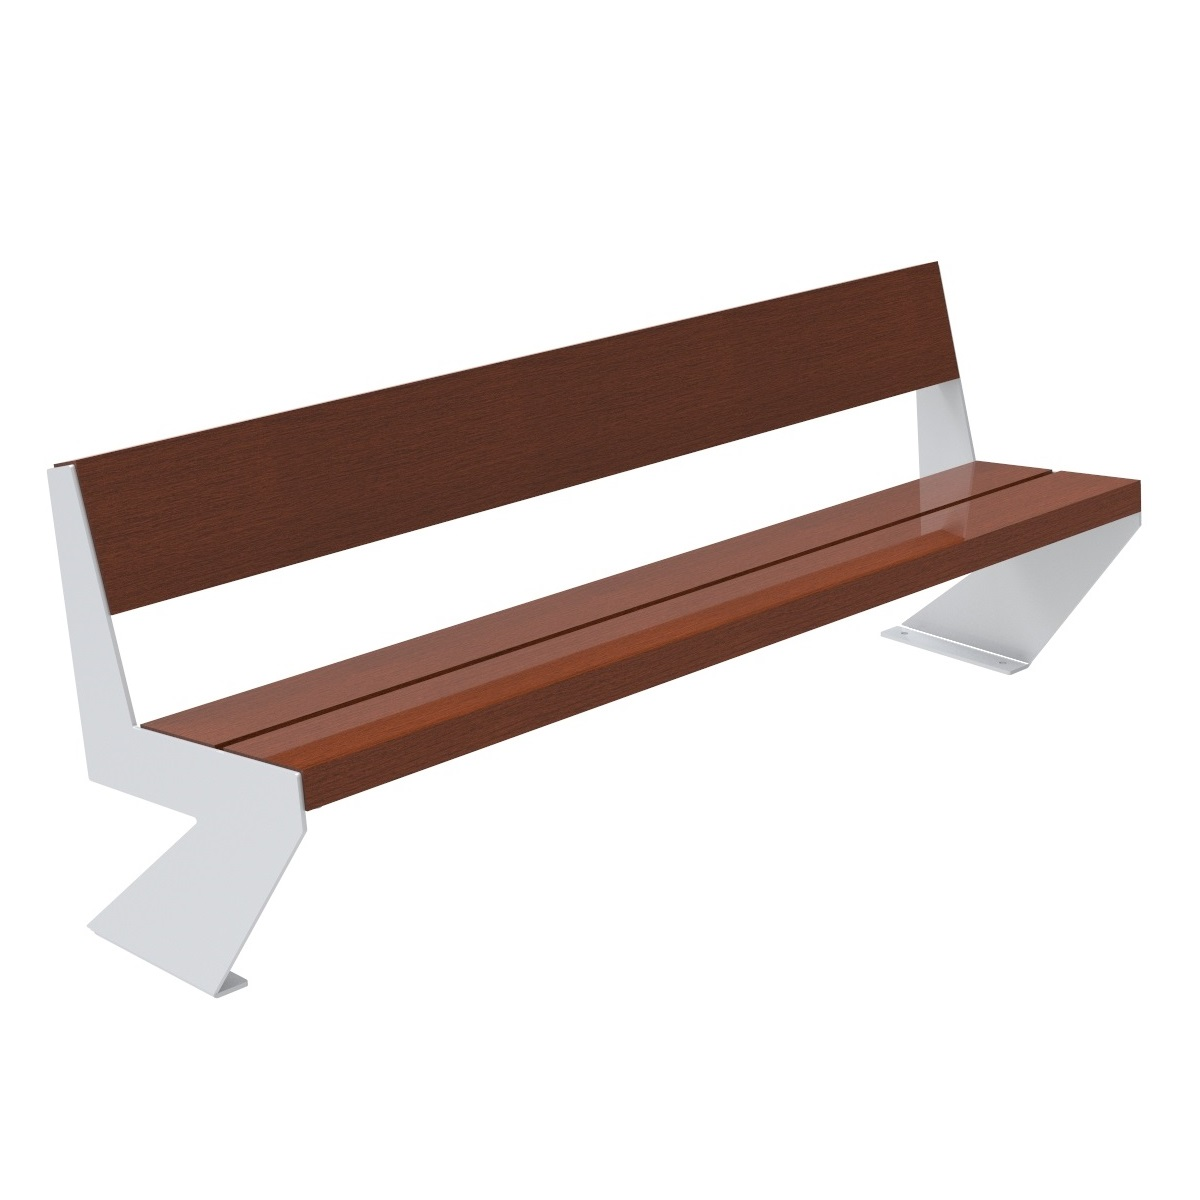 Zenit Wood Bench Oxiron Legs Urban Furniture Parks And Gardens